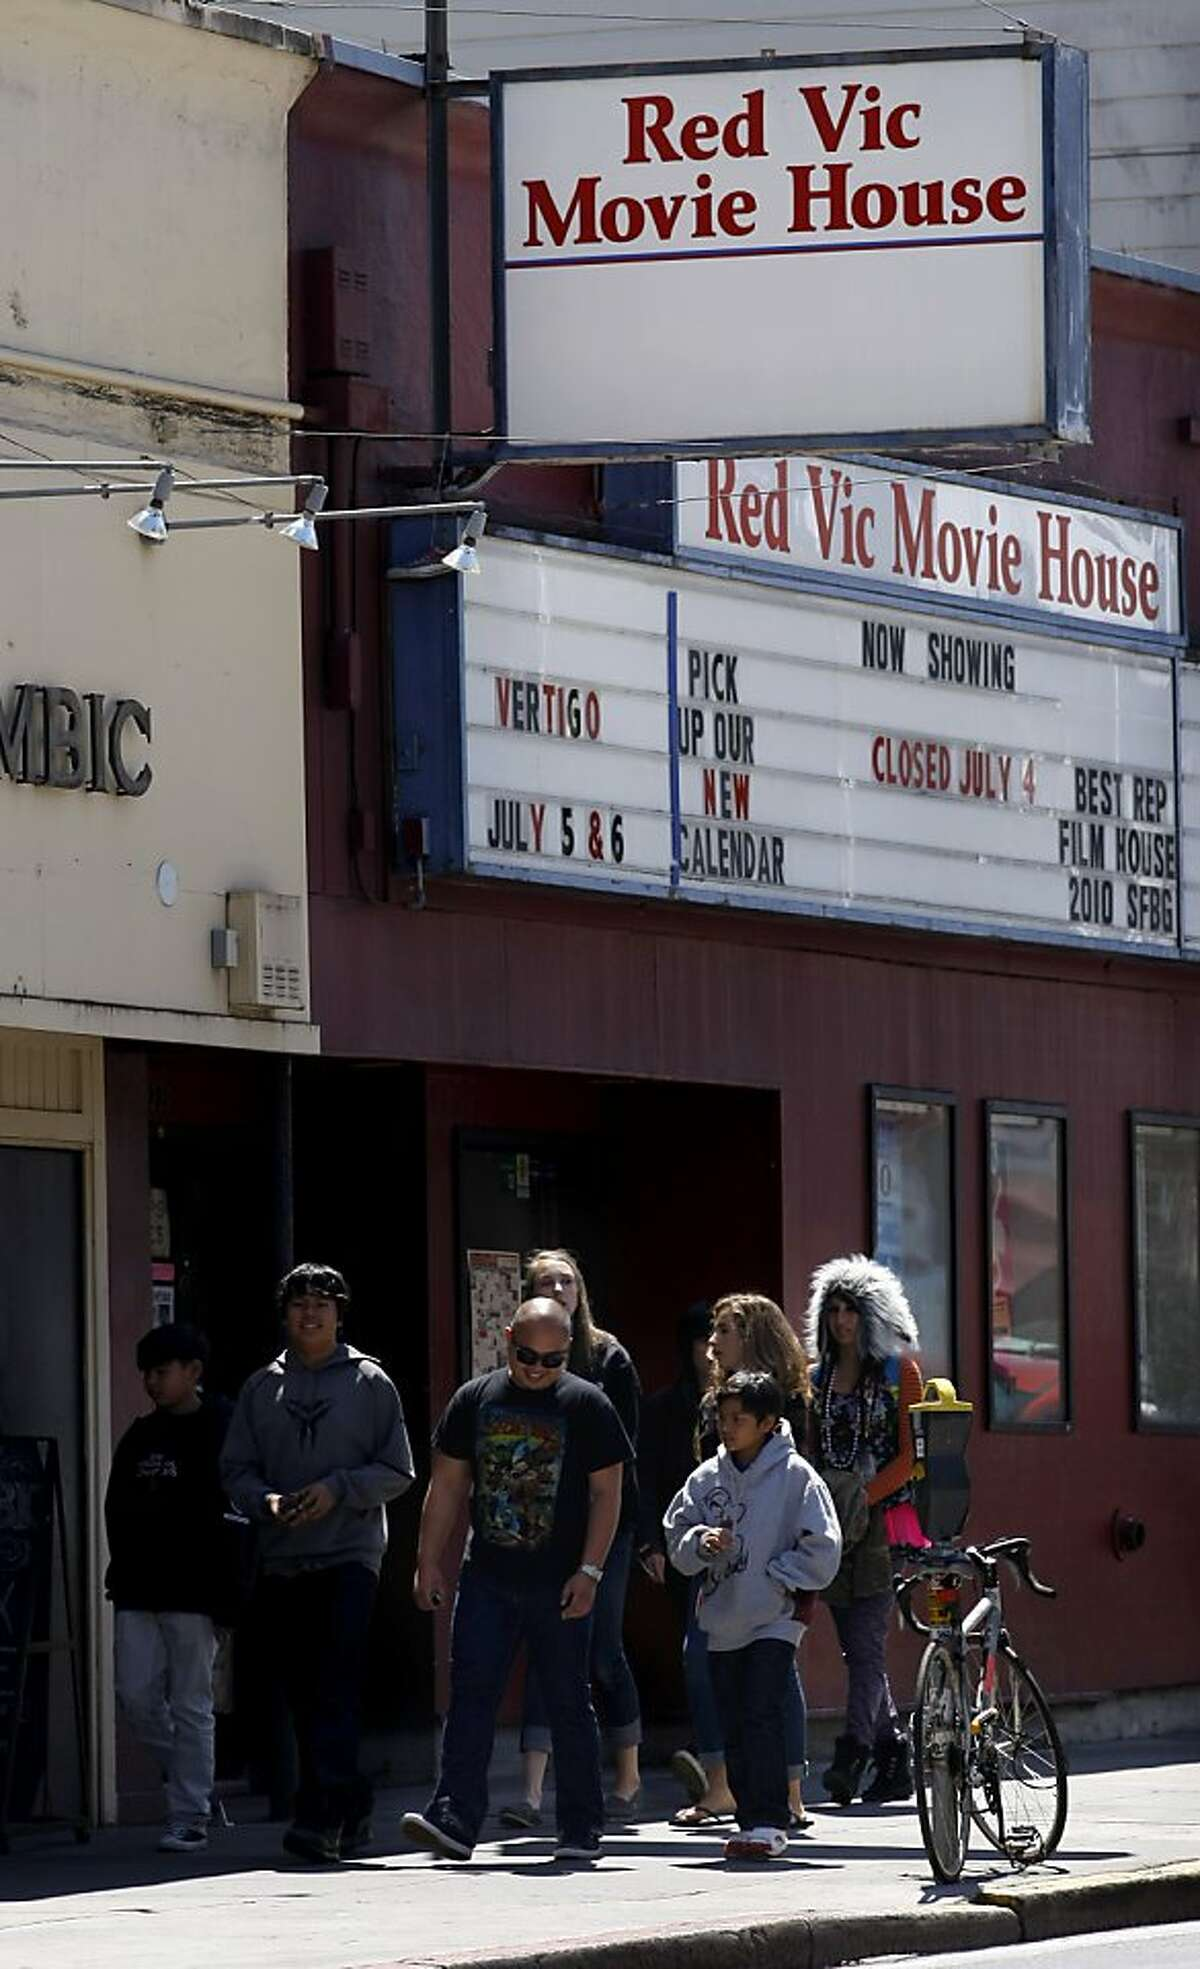 Crowds of tourists and residents walk past the old Red Vic Movie House, Wednesday July 6, 2011 at the Redvic Movie House in San Francisco, Calif. The theatre doors will close after 31 years on July 25.